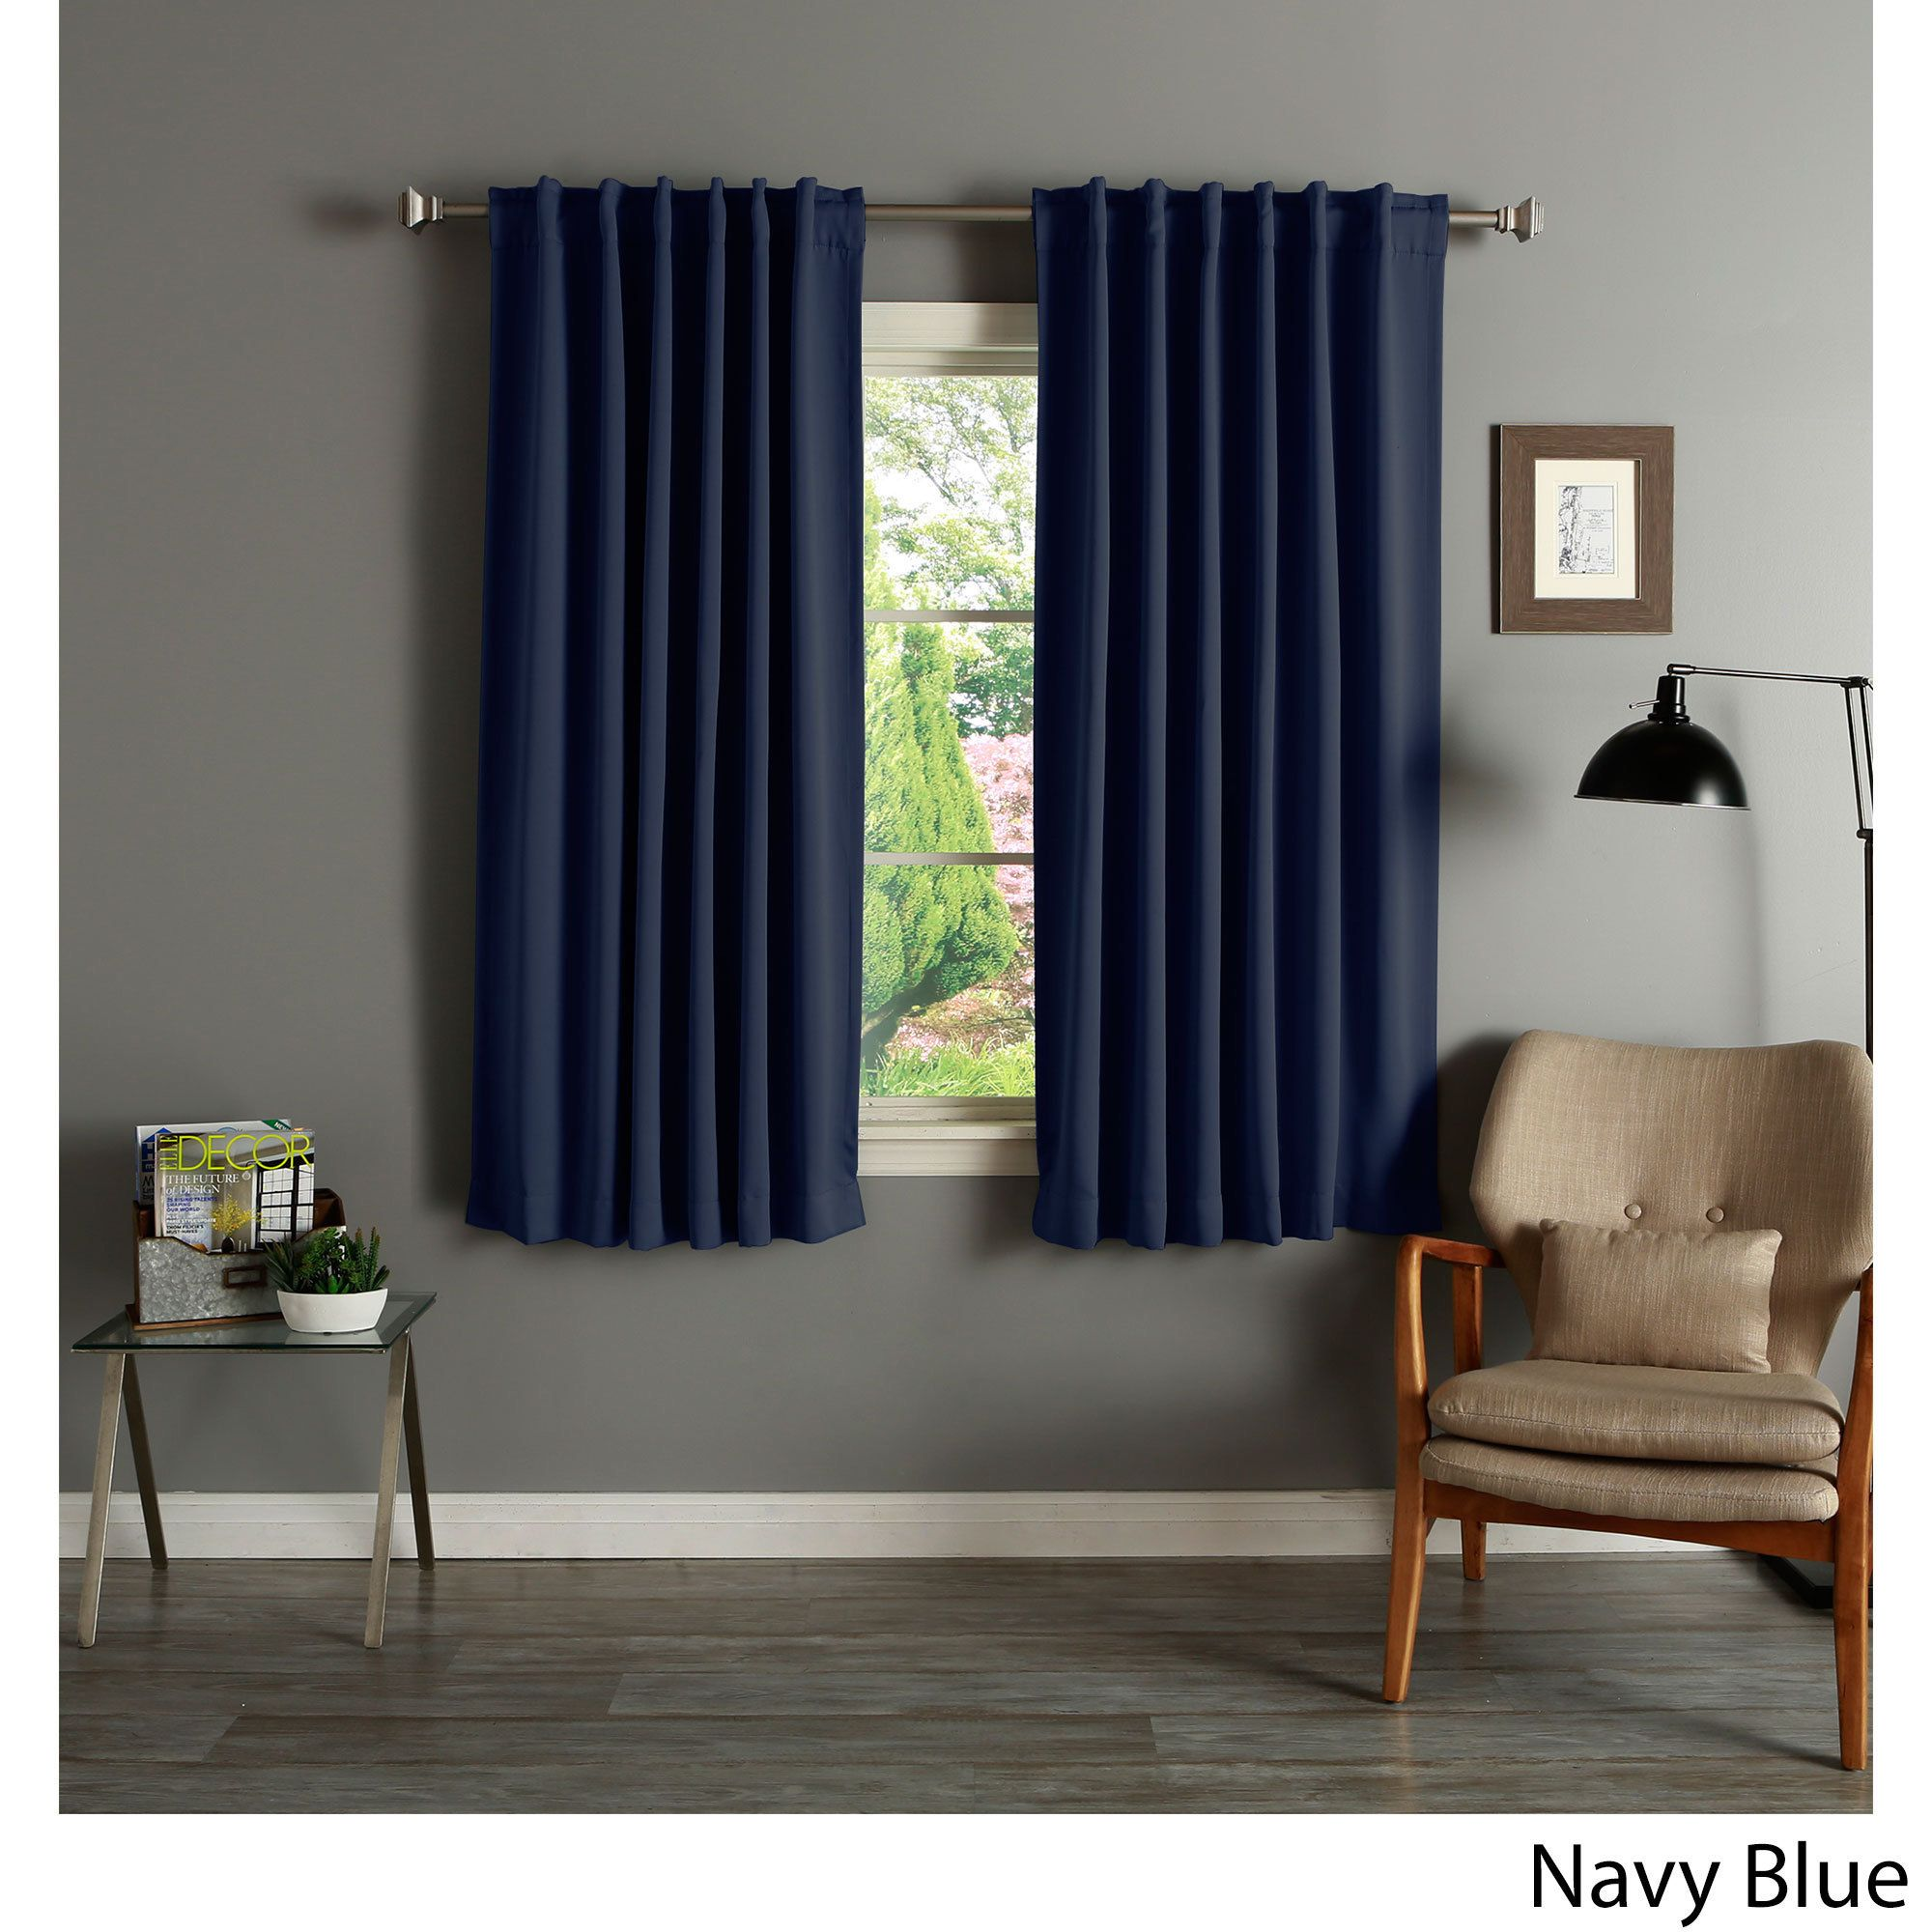 Stunning Aurora Home Solid Insulated Rmal Blackout Curtain Panel Pair Size X Aurora Home Solid Insulated Rmal Blackout Curtain Panel Navy Blue Curtains Dunelm Navy Blue Curtains Walmart baby Navy Blue Curtains